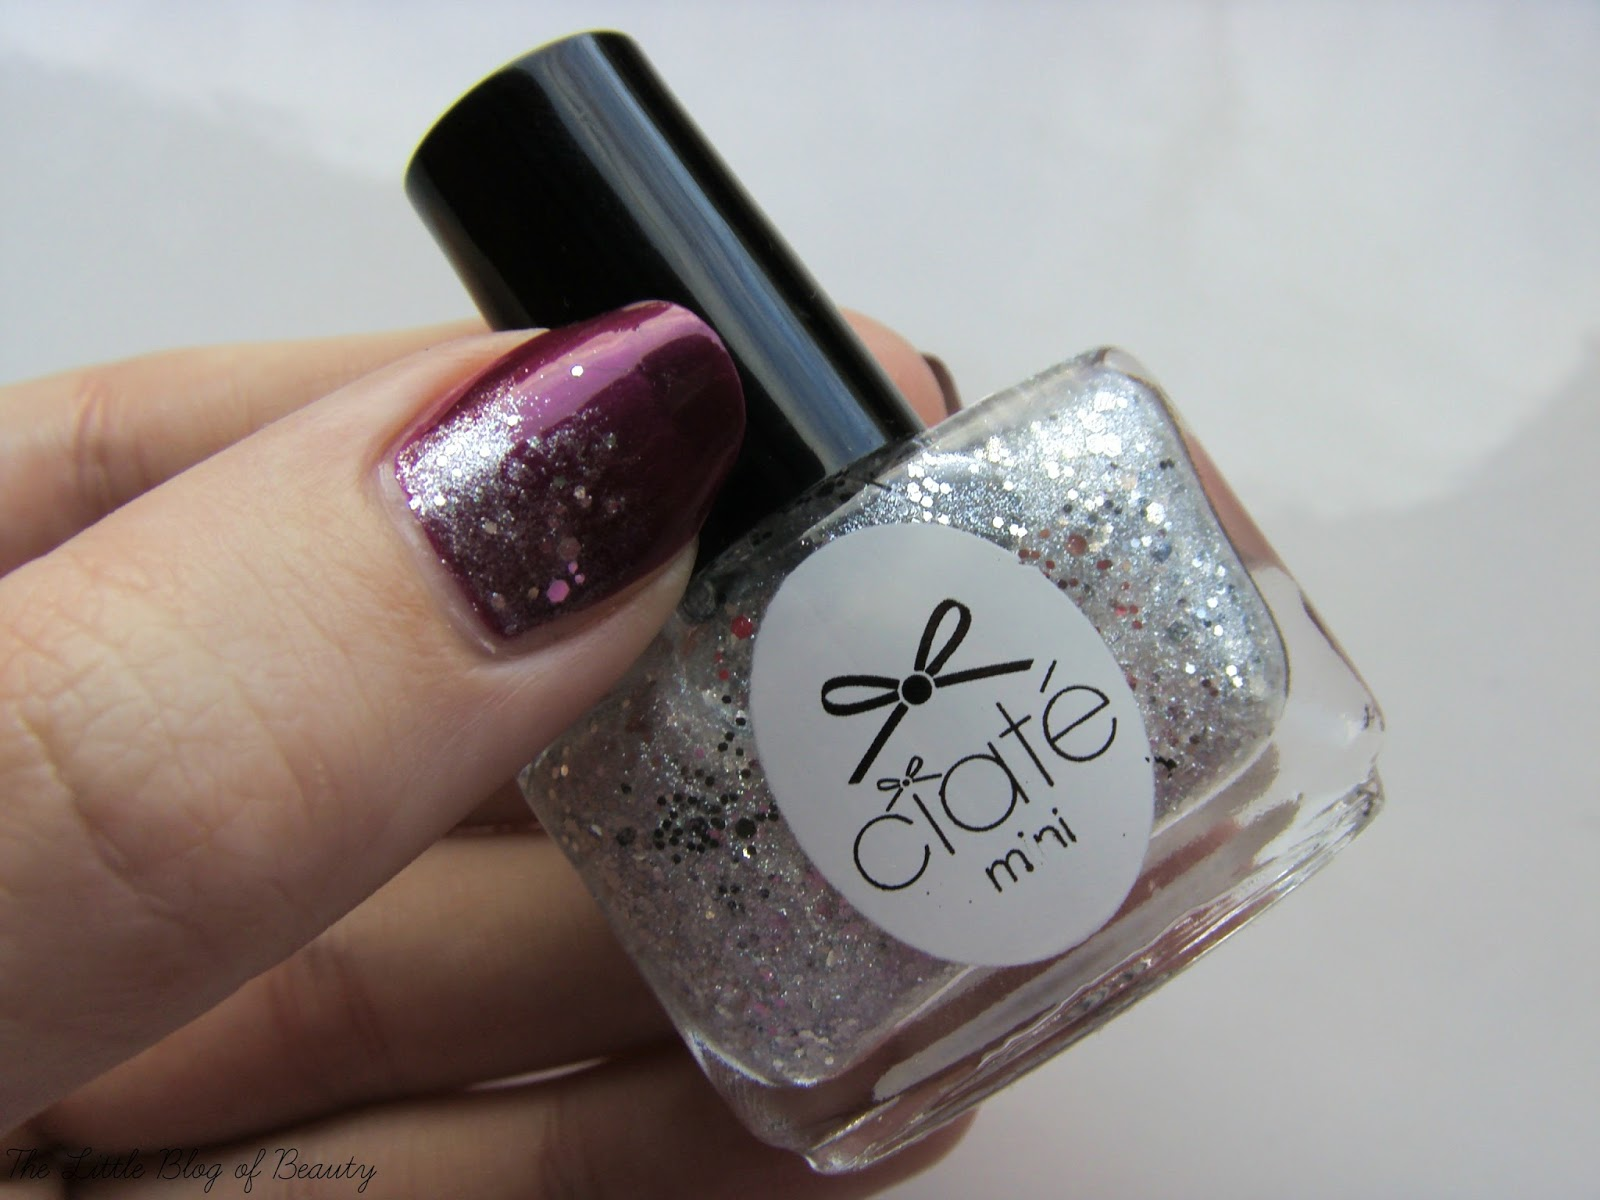 Nail art - Glitter gradient using OPI Kiss me - or Elf! and Ciate Locket